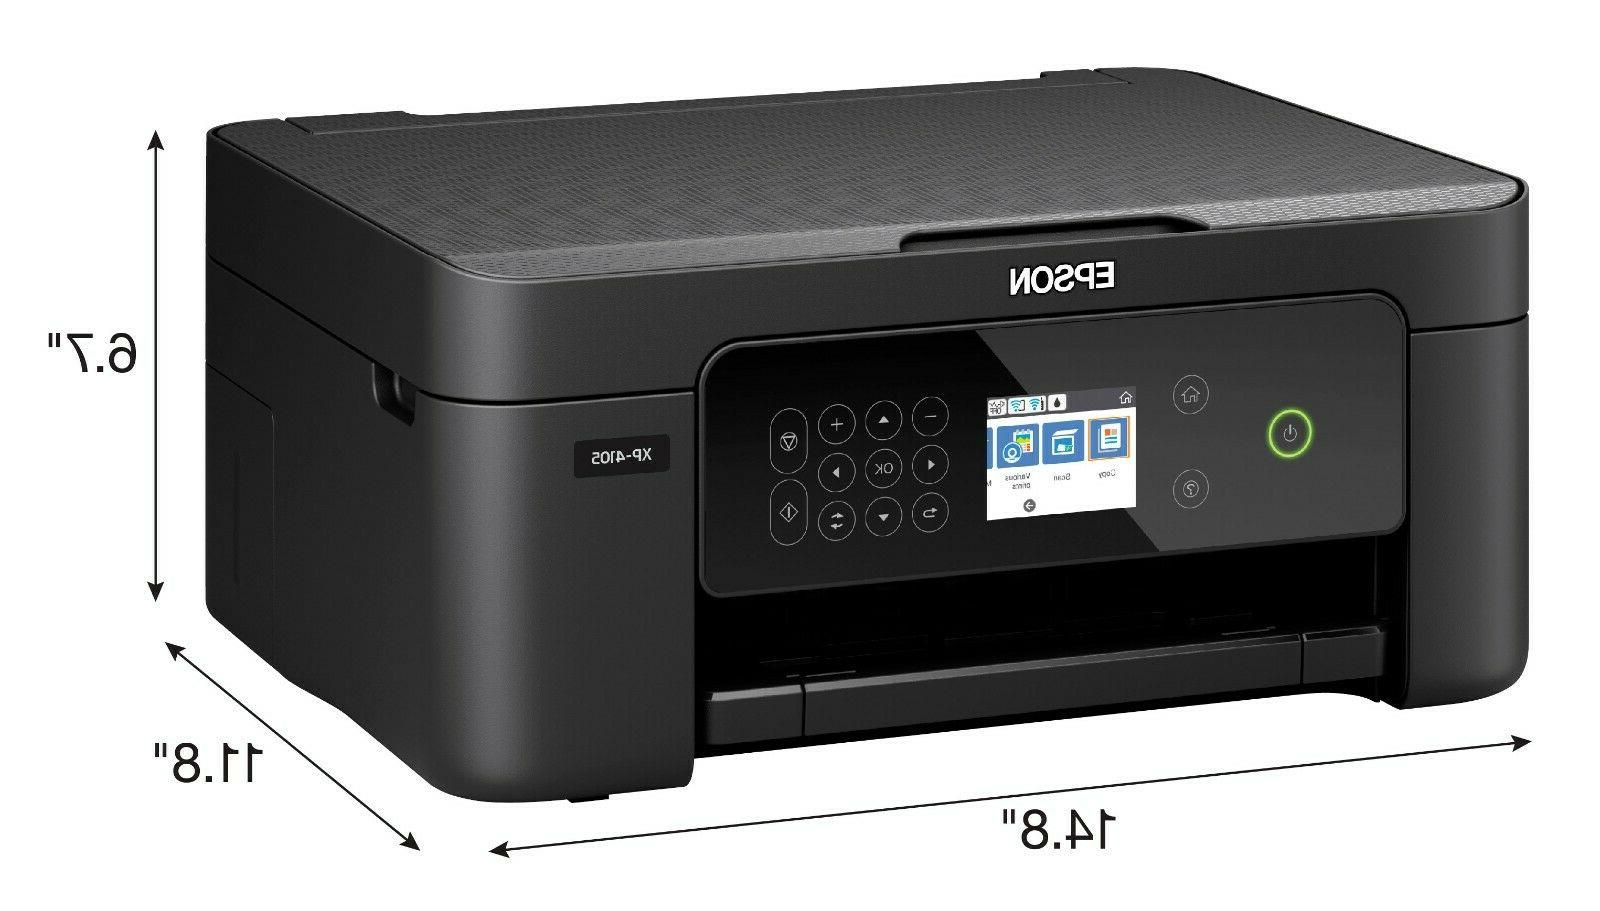 Epson Machine Fax Scanner All-In-One Office